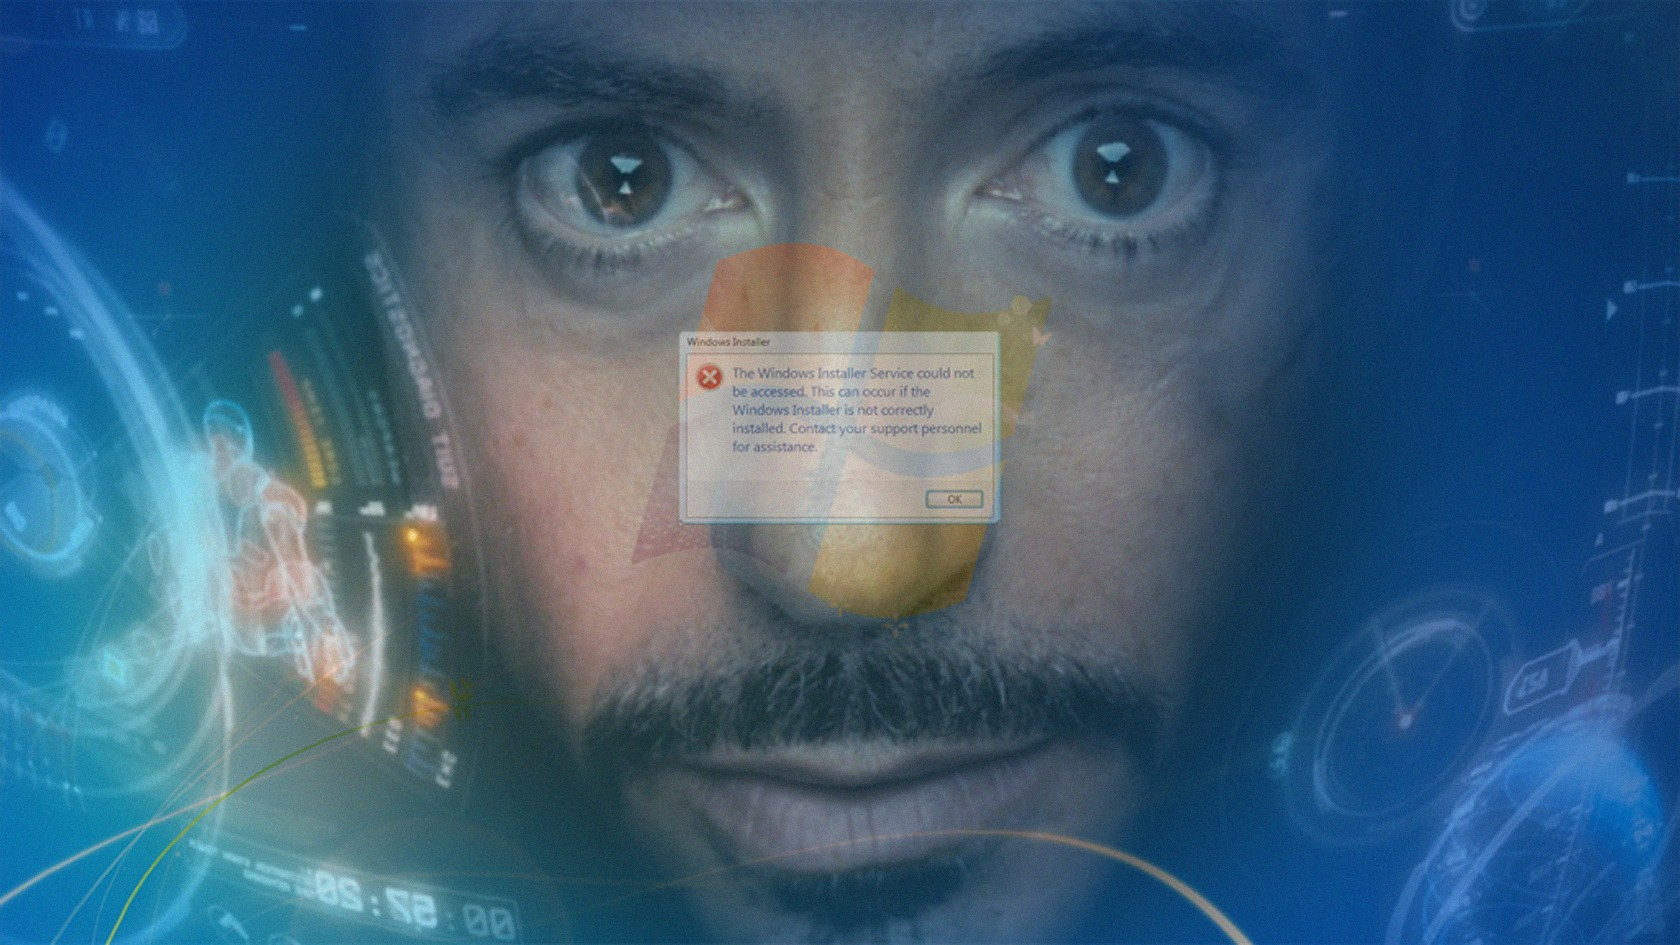 Iron Man 3d Live Wallpaper Apk Iron Man Jarvis Operating Systems Errors Windows 7